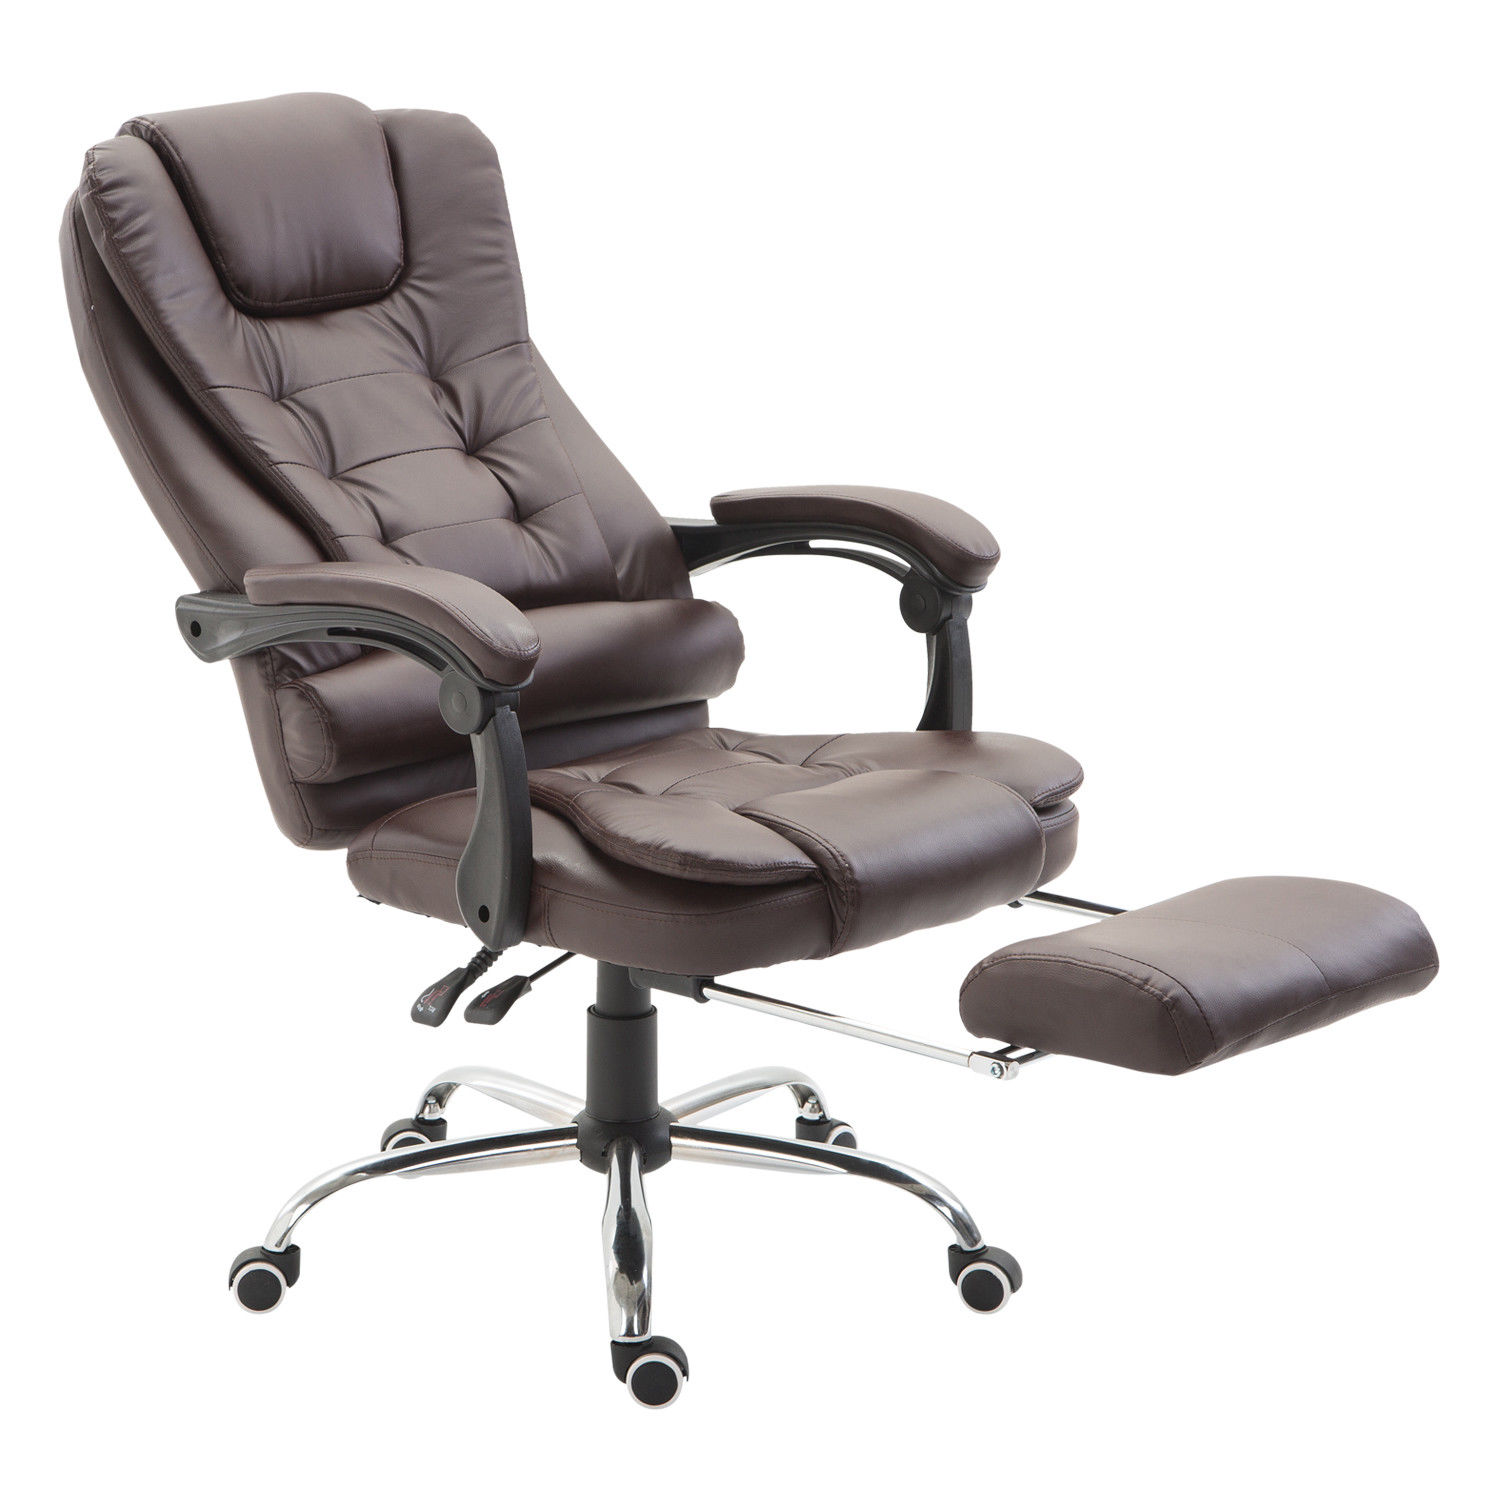 Office Chair Footrest Homcom Executive Style Reclining Office Napping Chair Pu